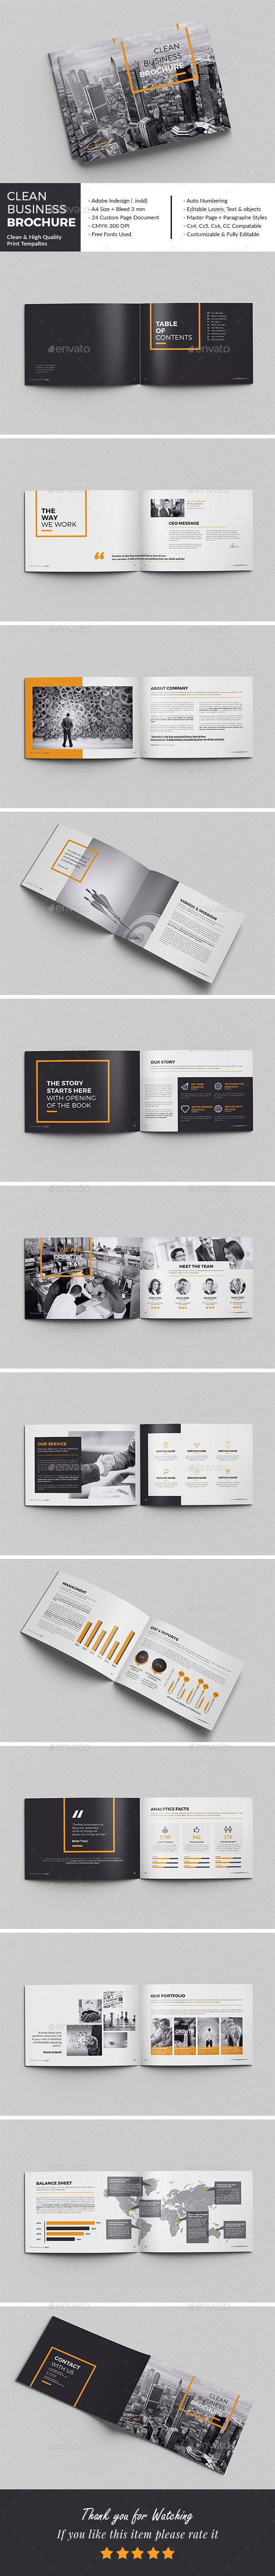 """Check out this @Behance project: """"Clean Business Brochure"""" https://www.behance.net/gallery/43839771/Clean-Business-Brochure"""